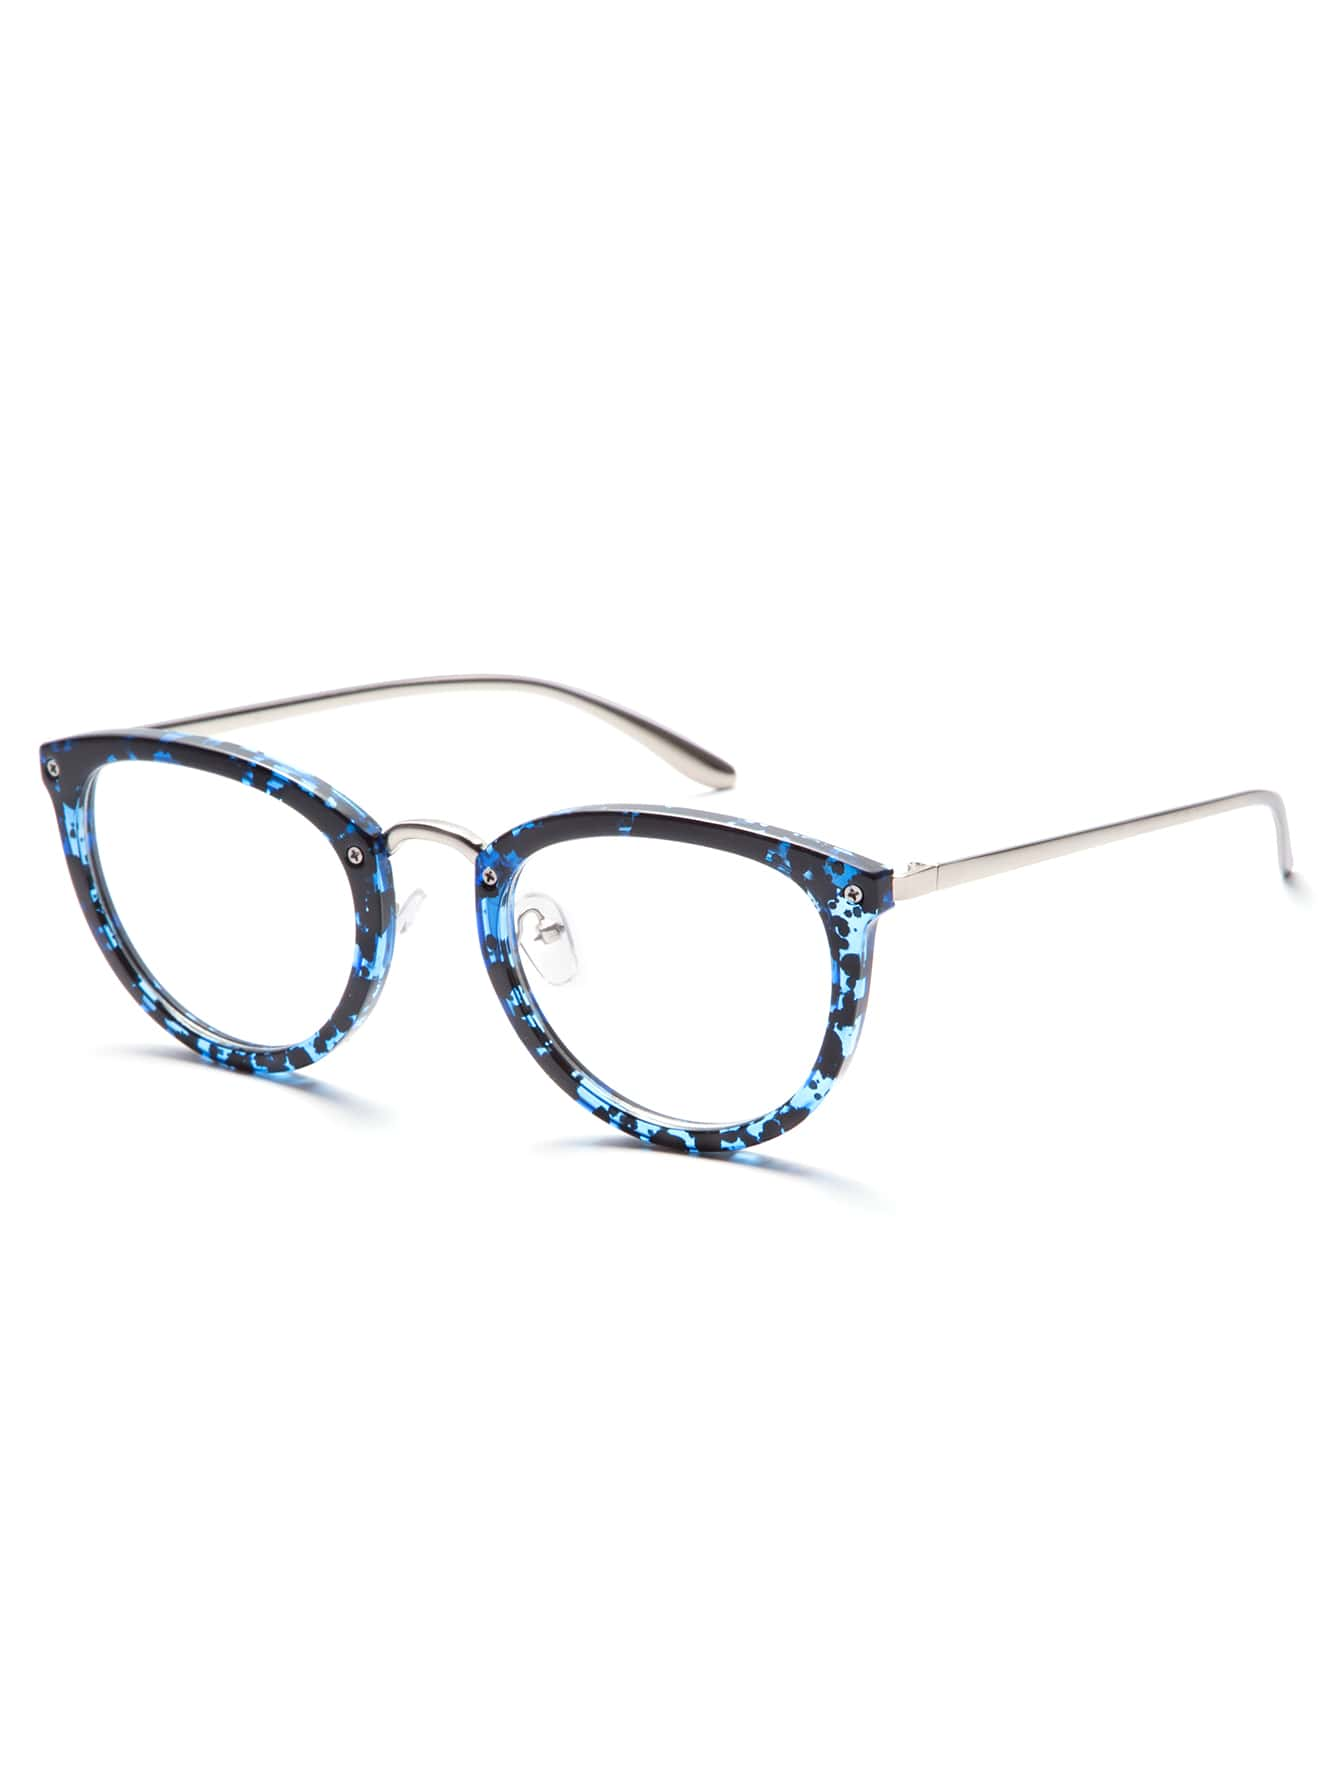 Blue Tortoise Frame Silver Arm Glasses -SheIn(Sheinside)